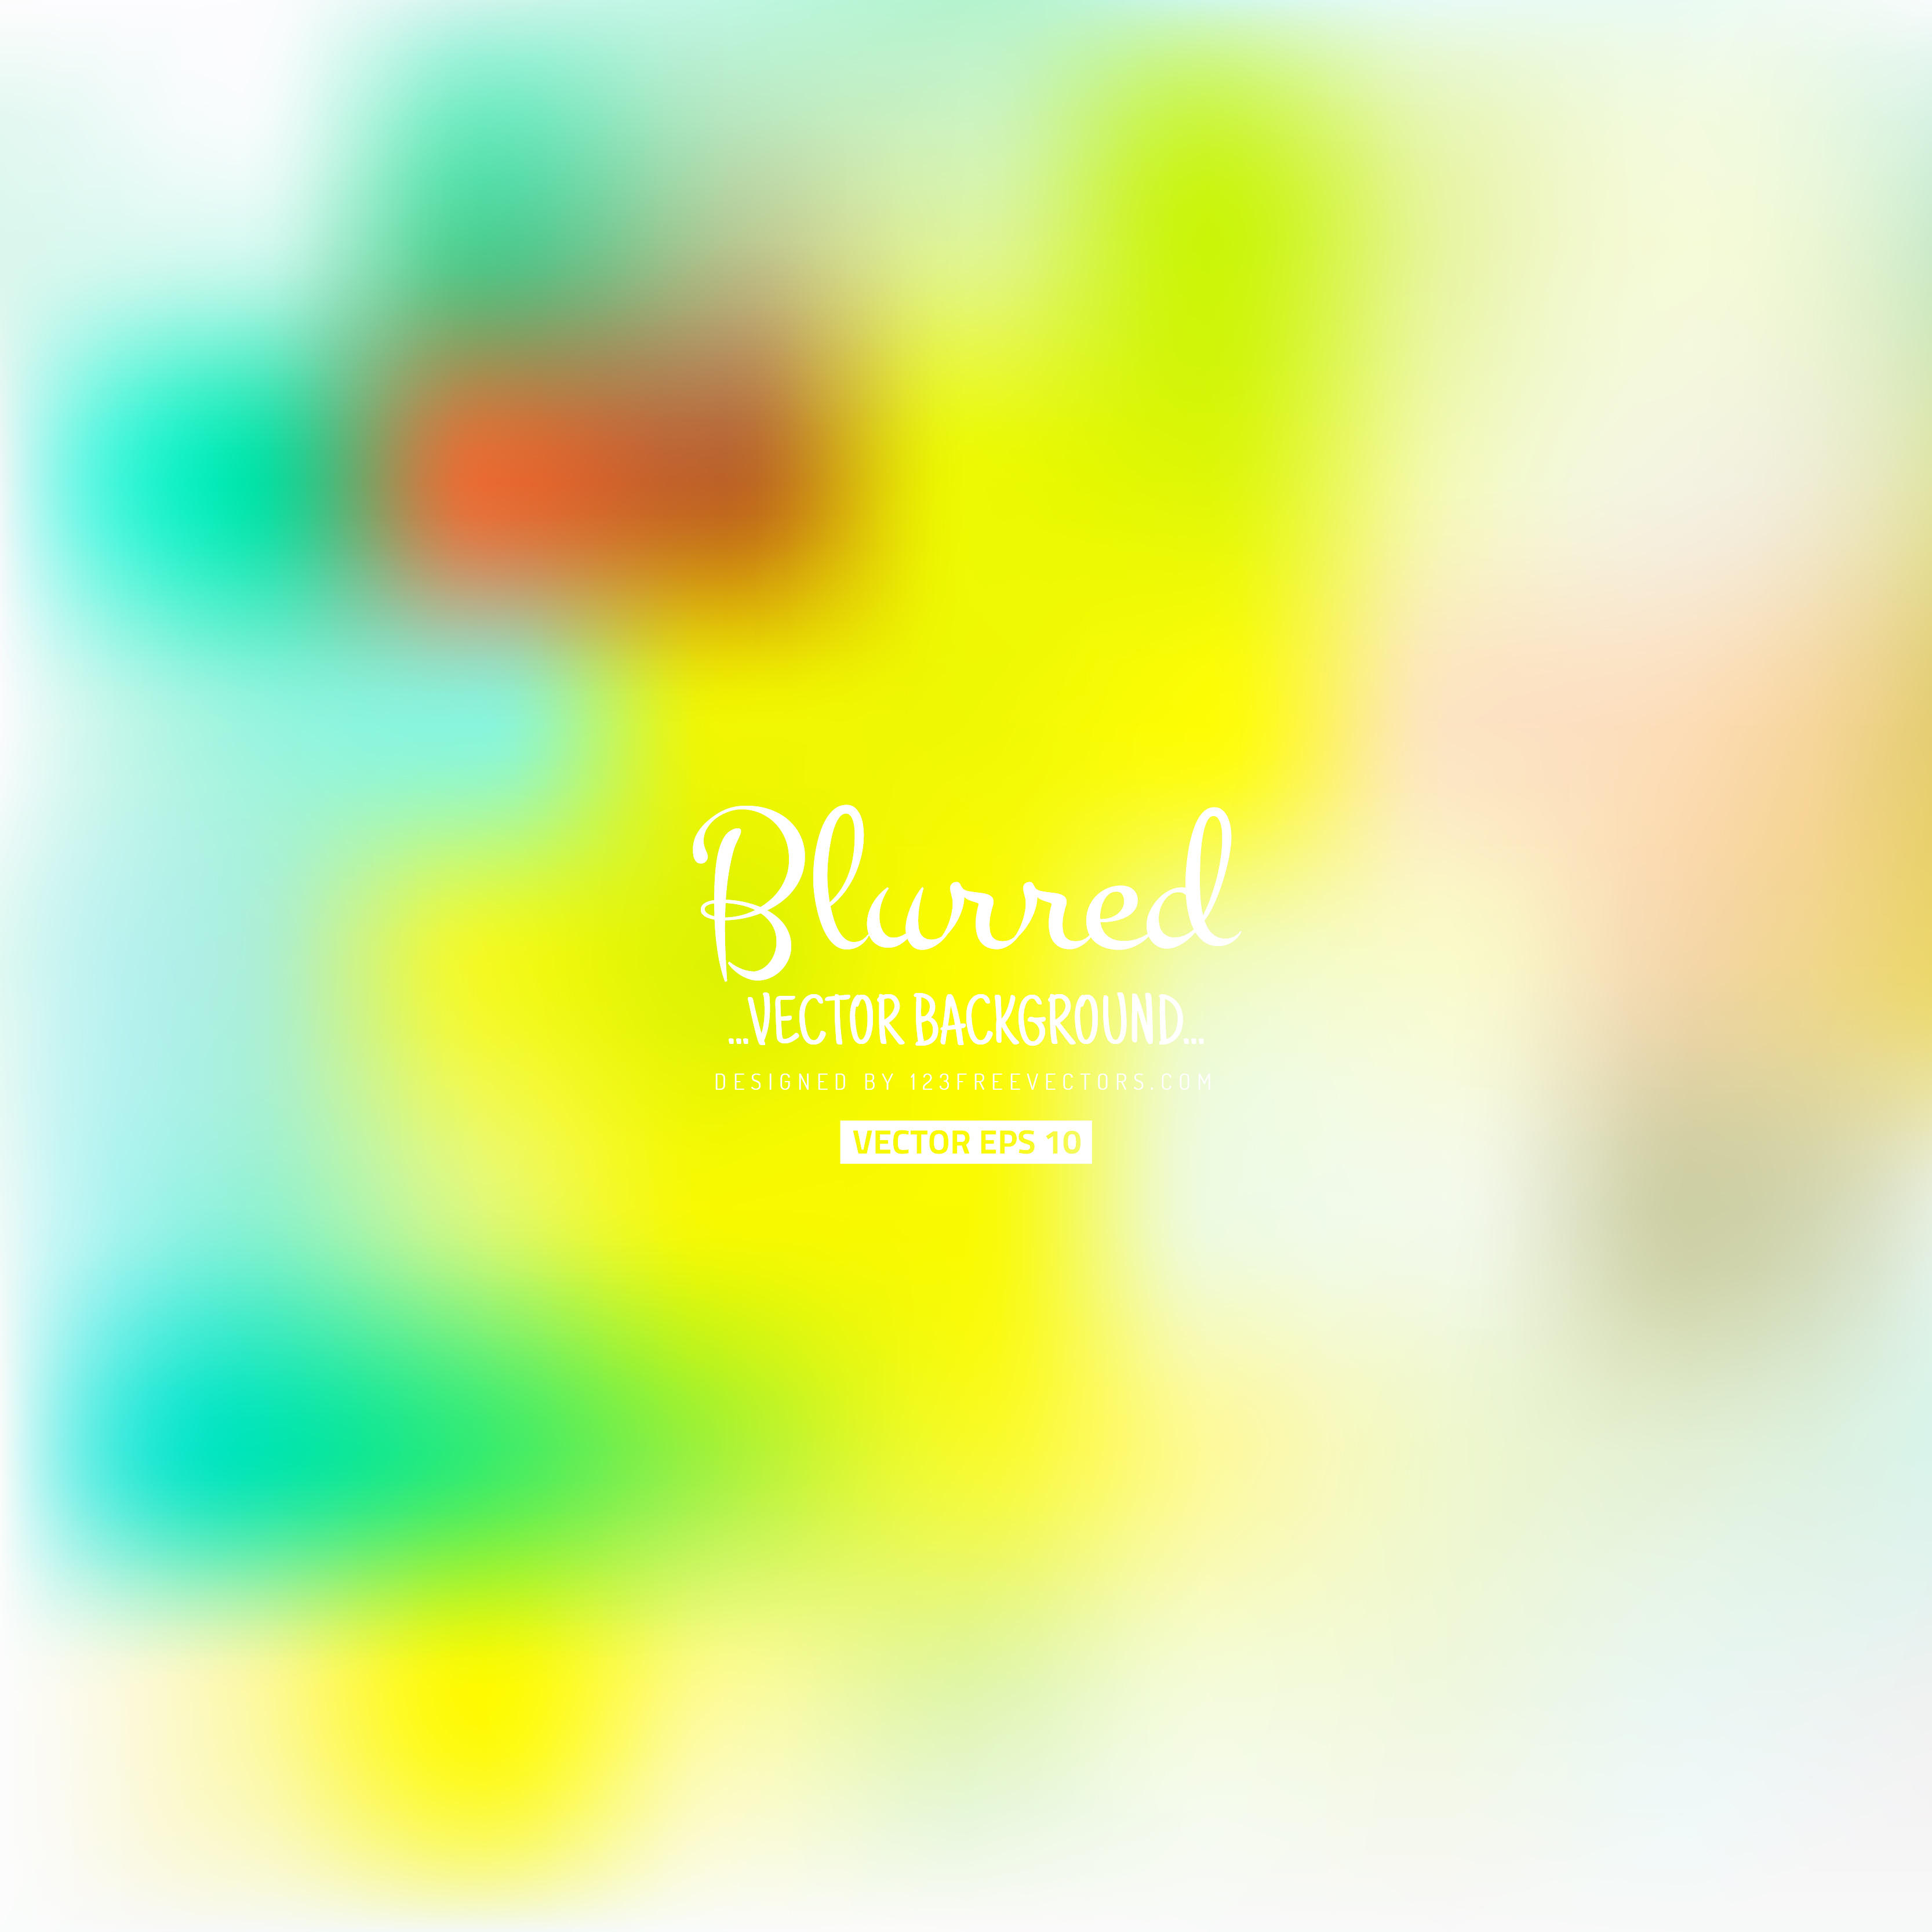 3333x3333 Abstract Blurred Light Color Background Vector 123freevectors